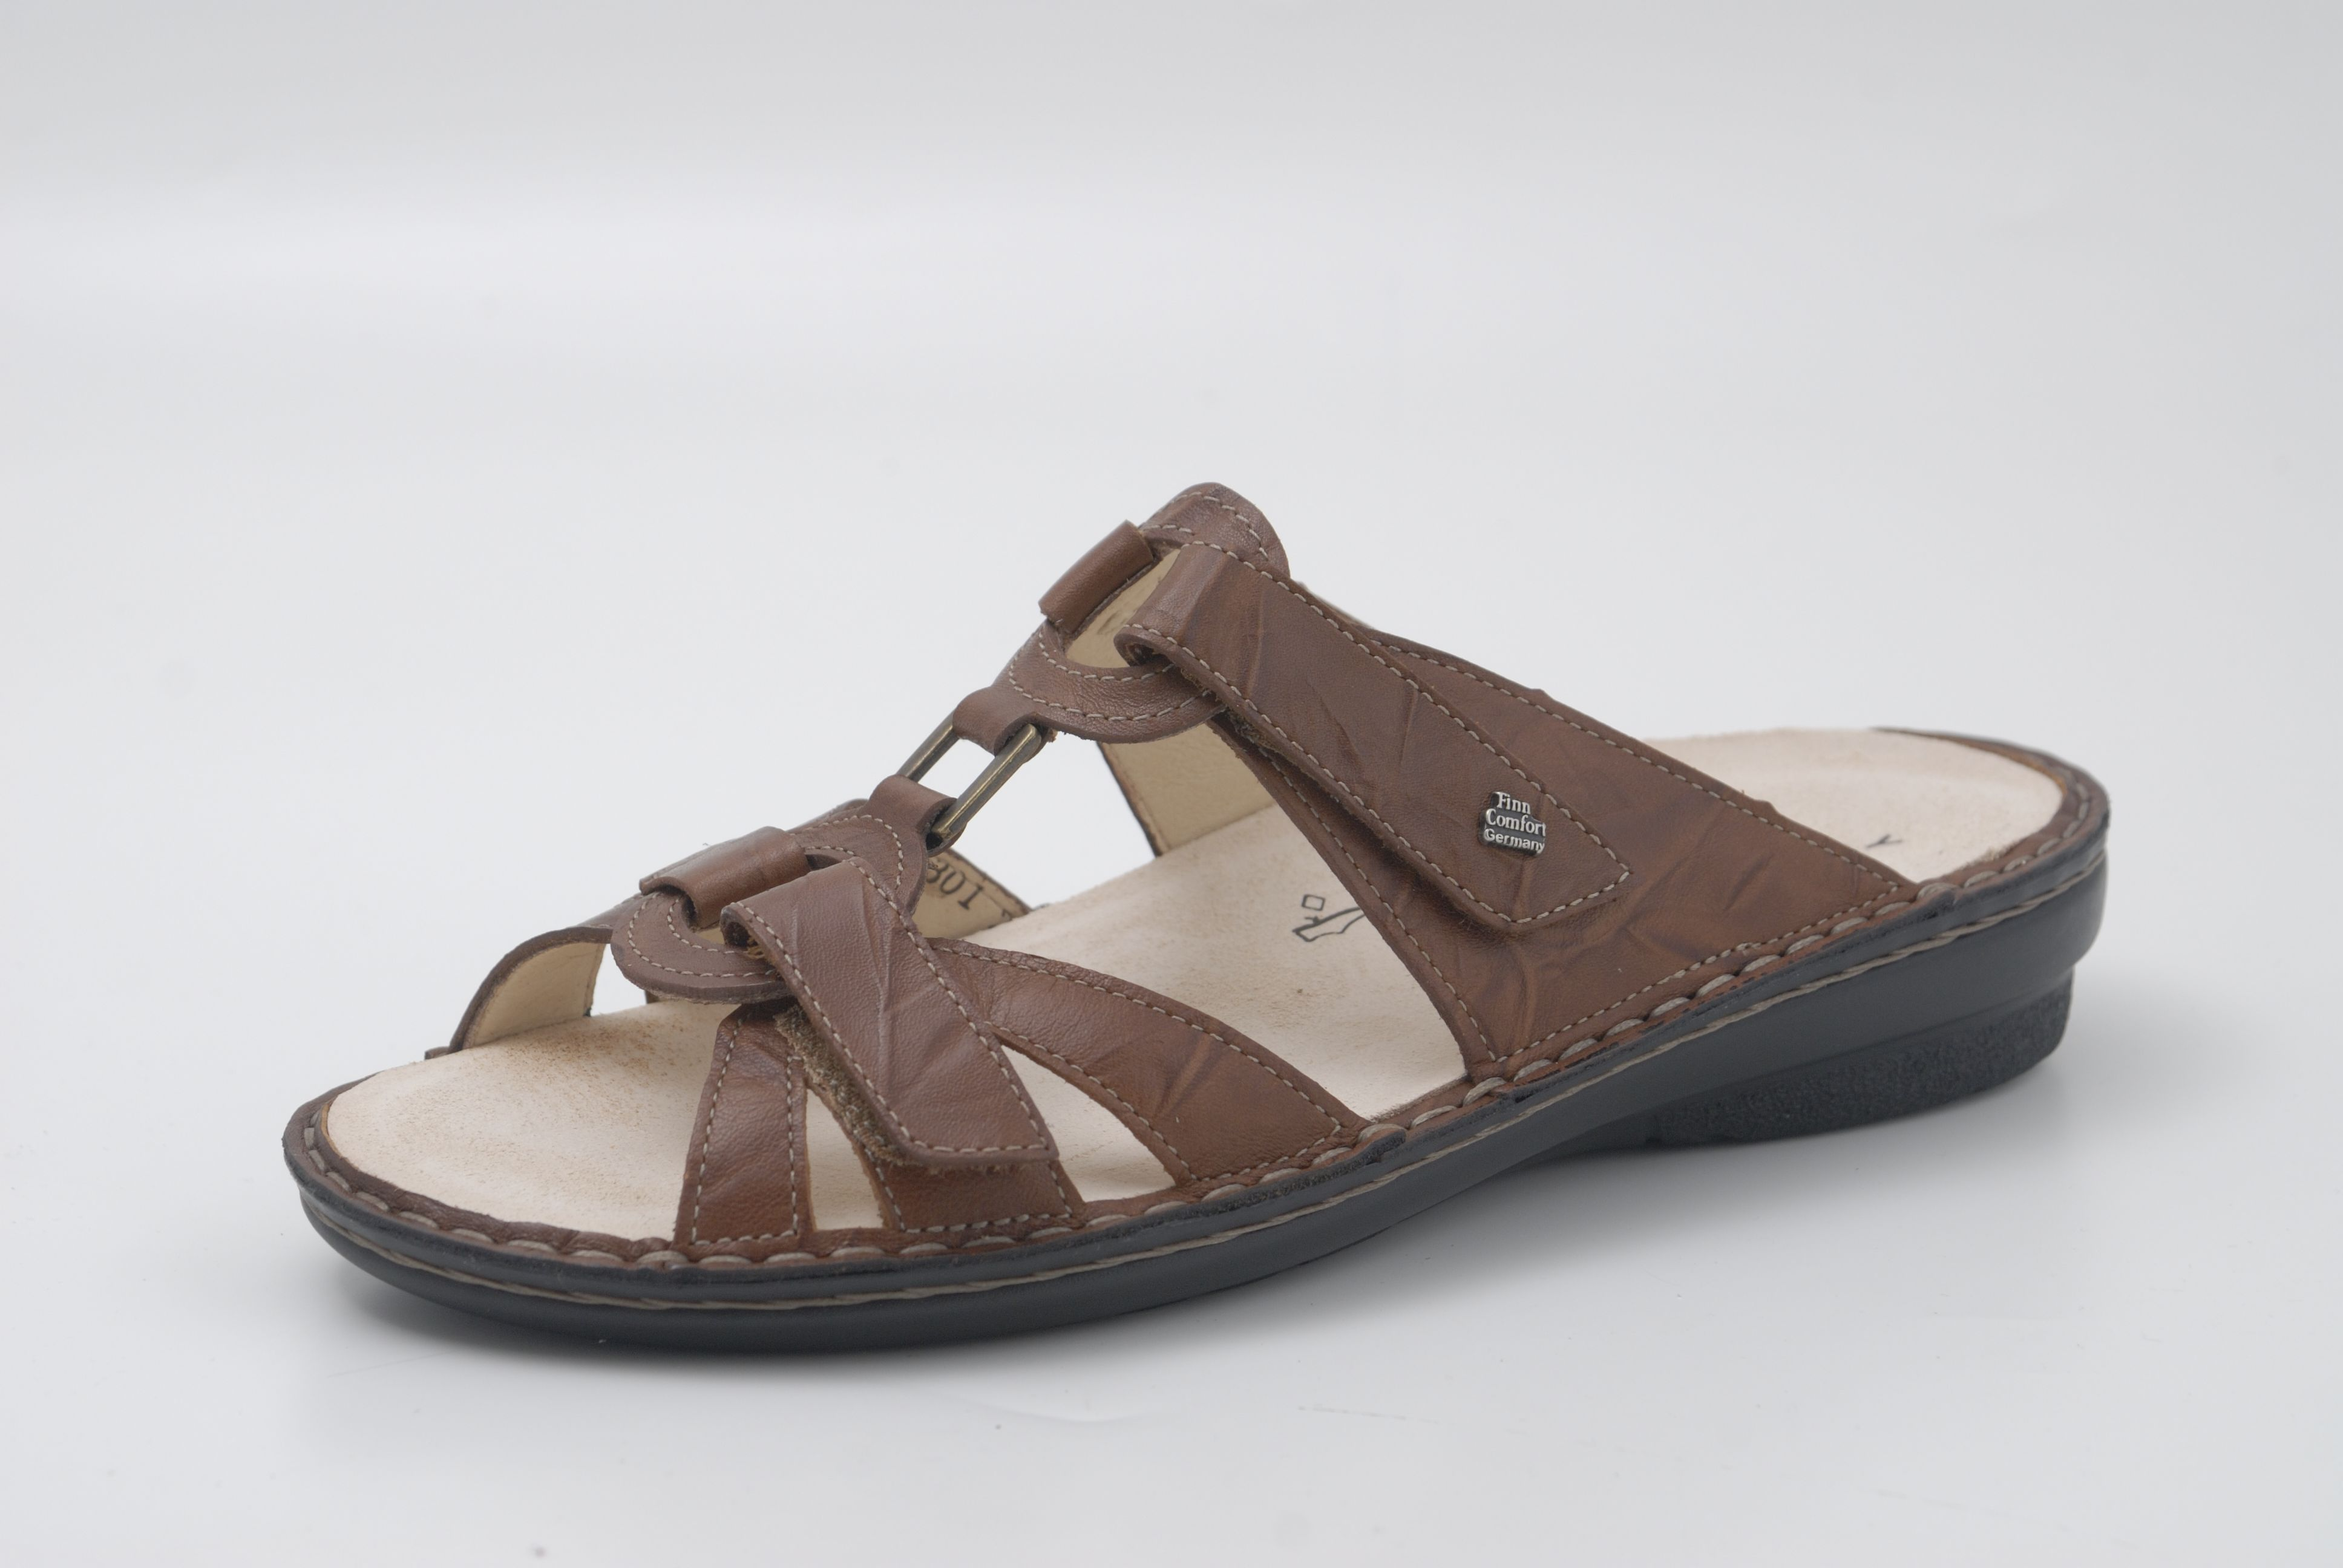 Pin By Foot Solutions Of Raleigh On Finn Comfort Finn Comfort Sandals Shoes